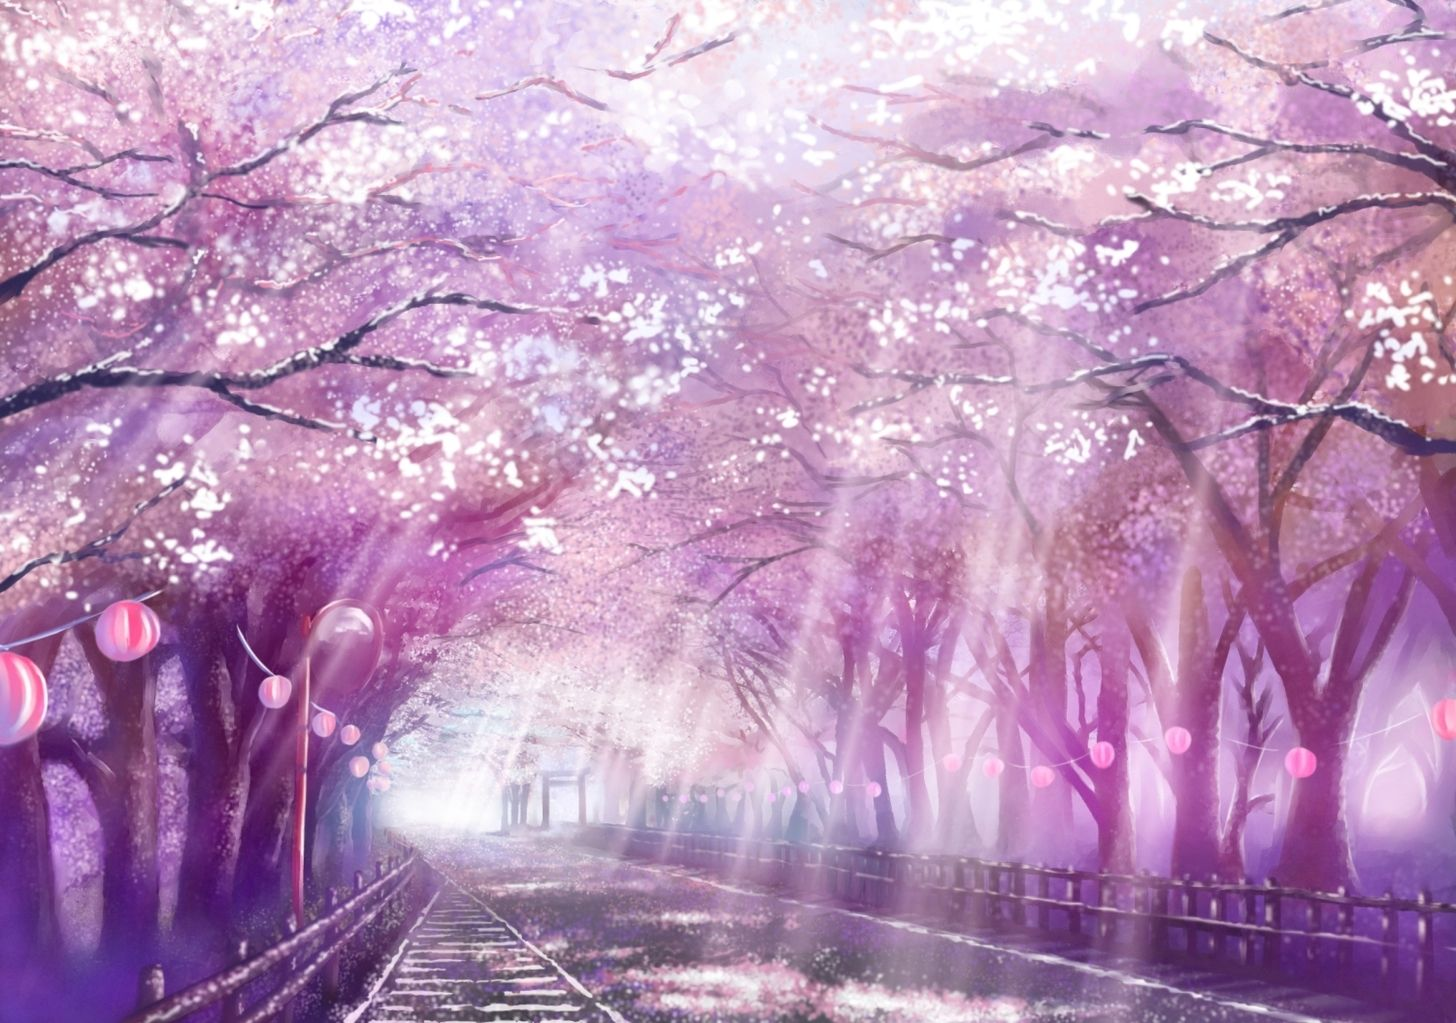 Mostly Gif Dump Anime Scenery Wallpaper Anime Scenery Anime Background